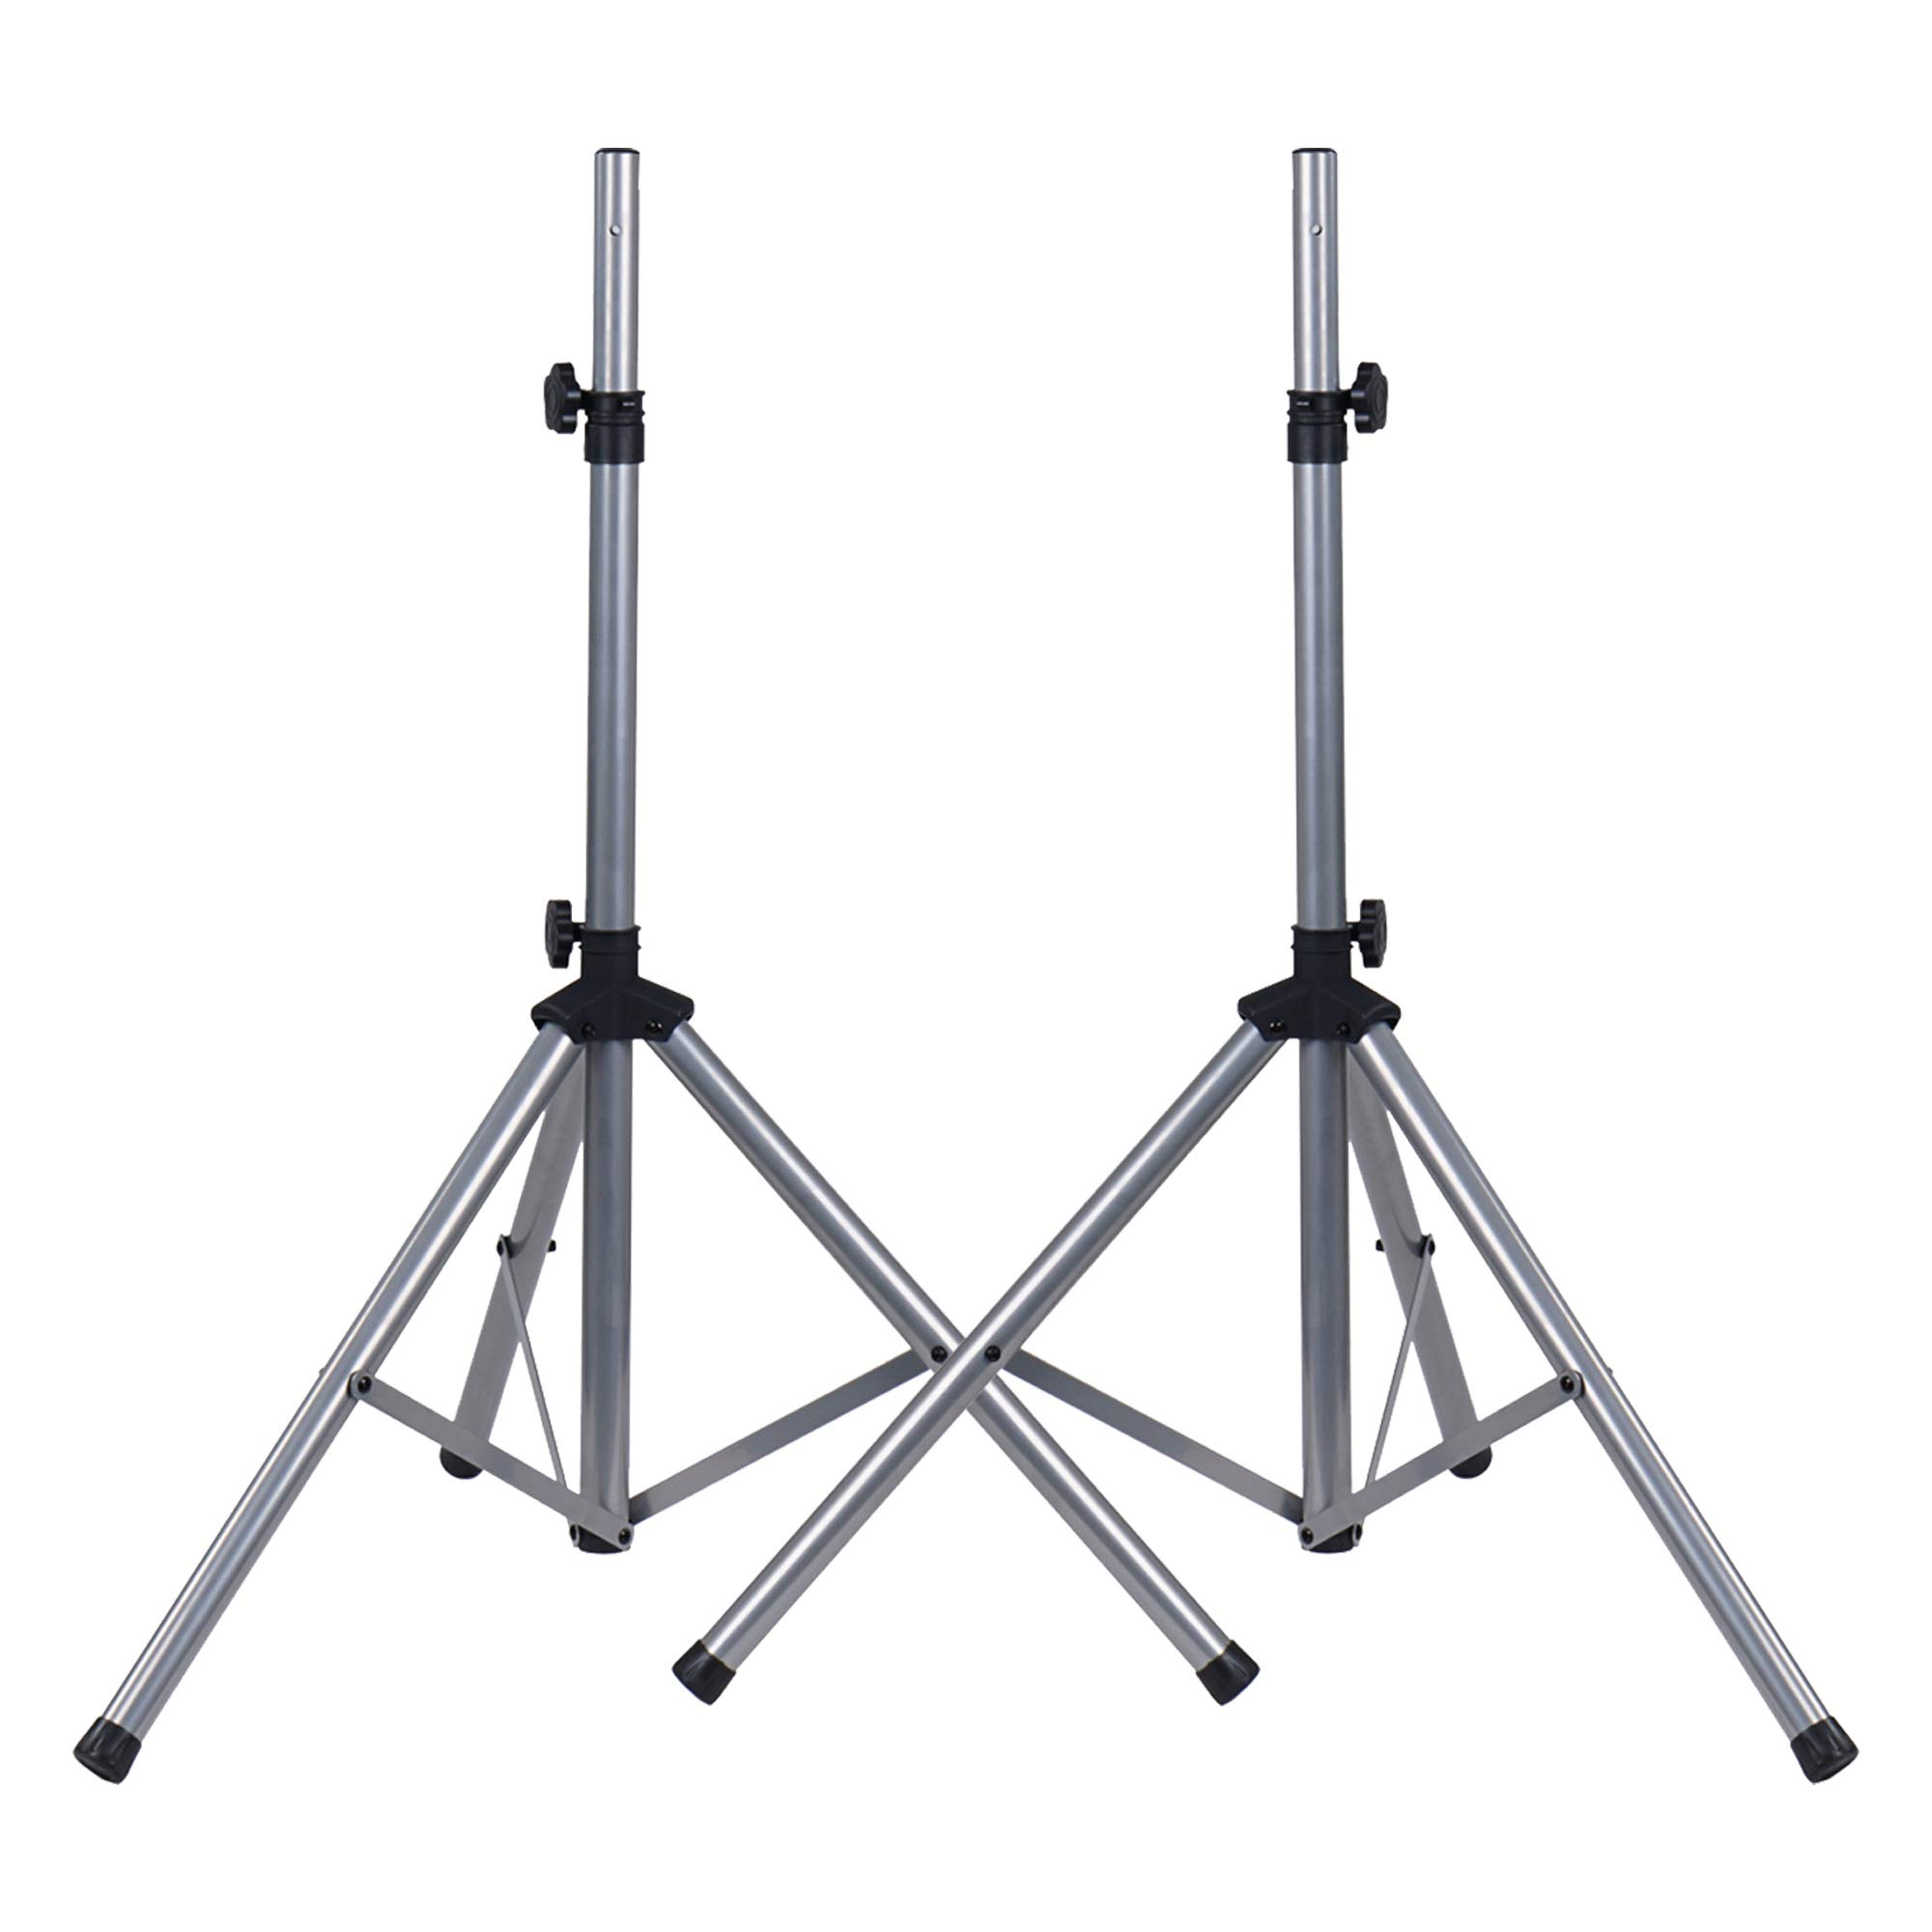 Sound Town 2-Pack Universal Tripod Speaker Stands with Adjustable Height, 35mm Compatible Insert, Locking Knob and Shaft Pin, Silver (STSD-71W-PAIR)